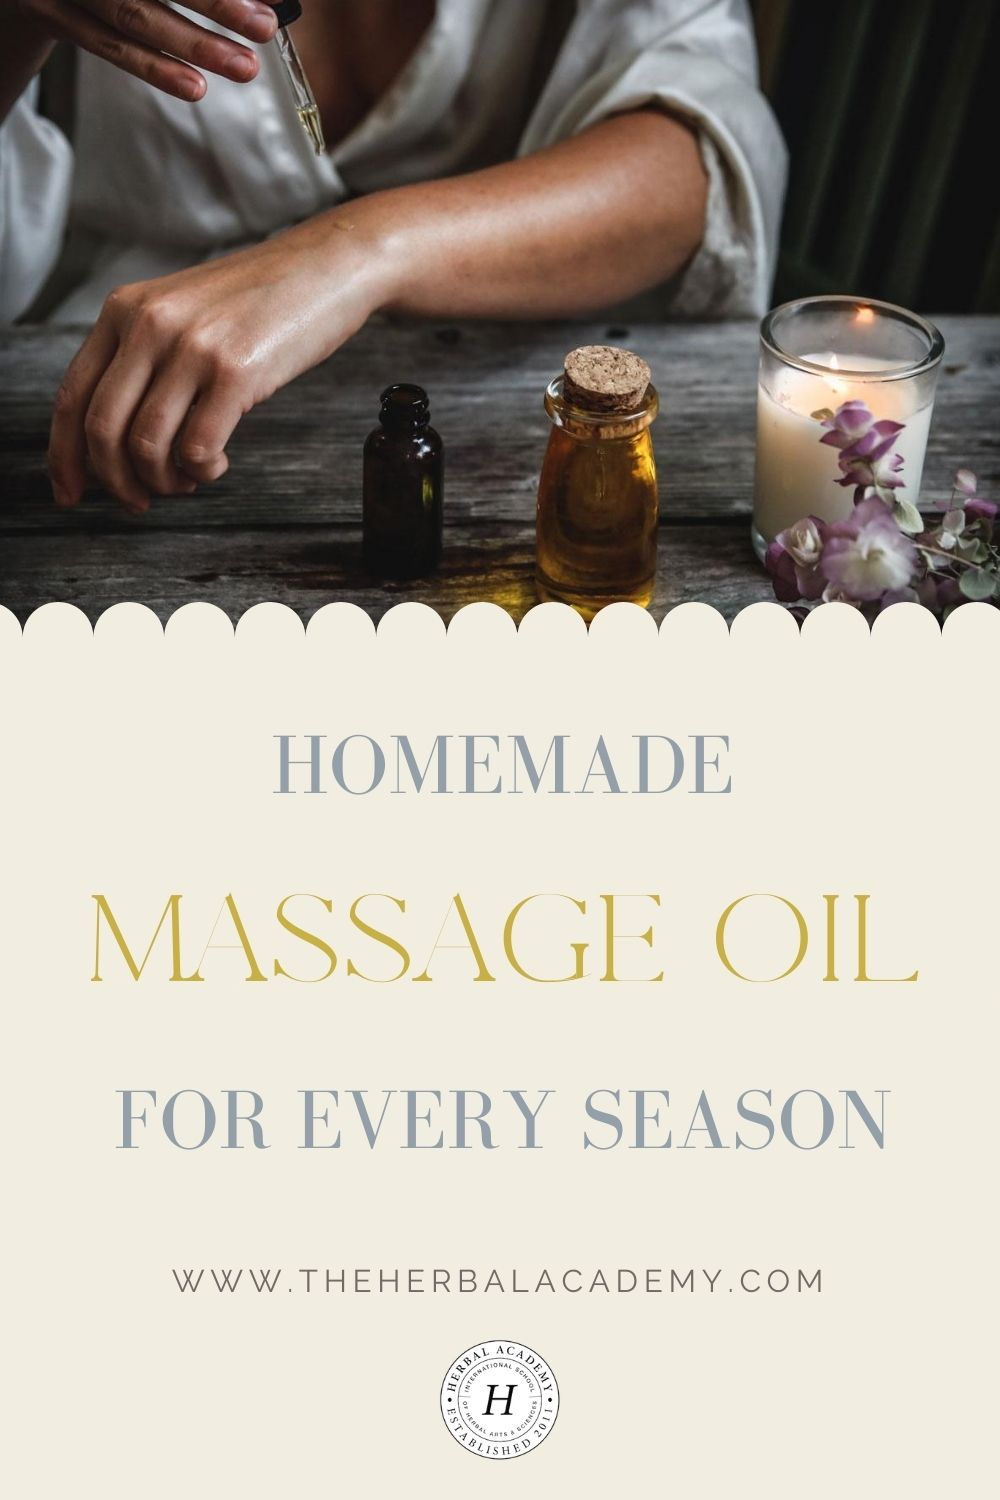 Homemade Massage Oil for Each Season   Herbal Academy   Herbal-infused homemade massage oils produce a grounding, supportive, and protective effect on the body and mind.